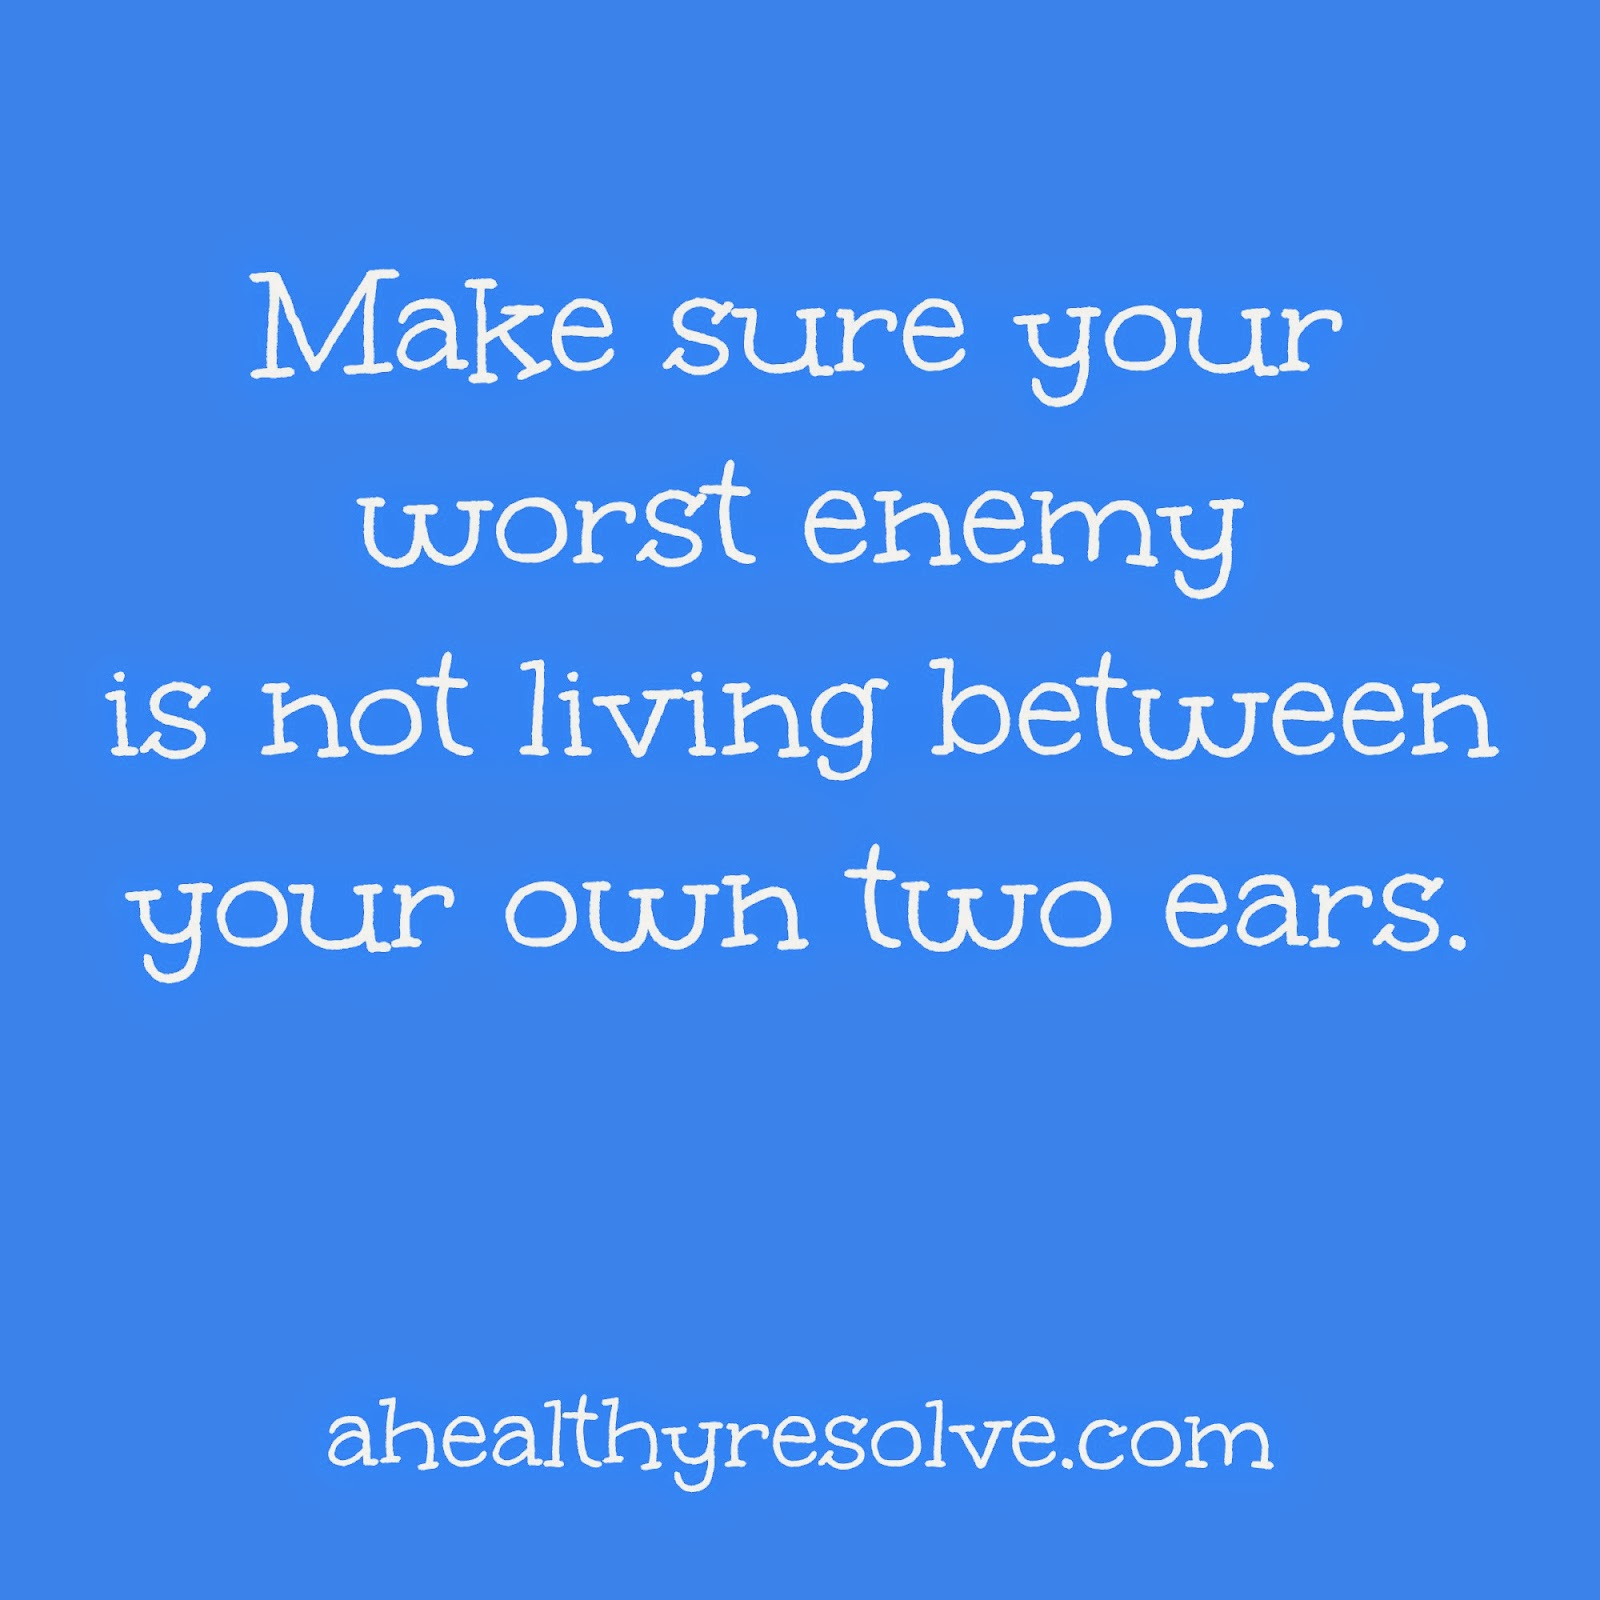 Make sure your own worst enemy is not between your own ears.